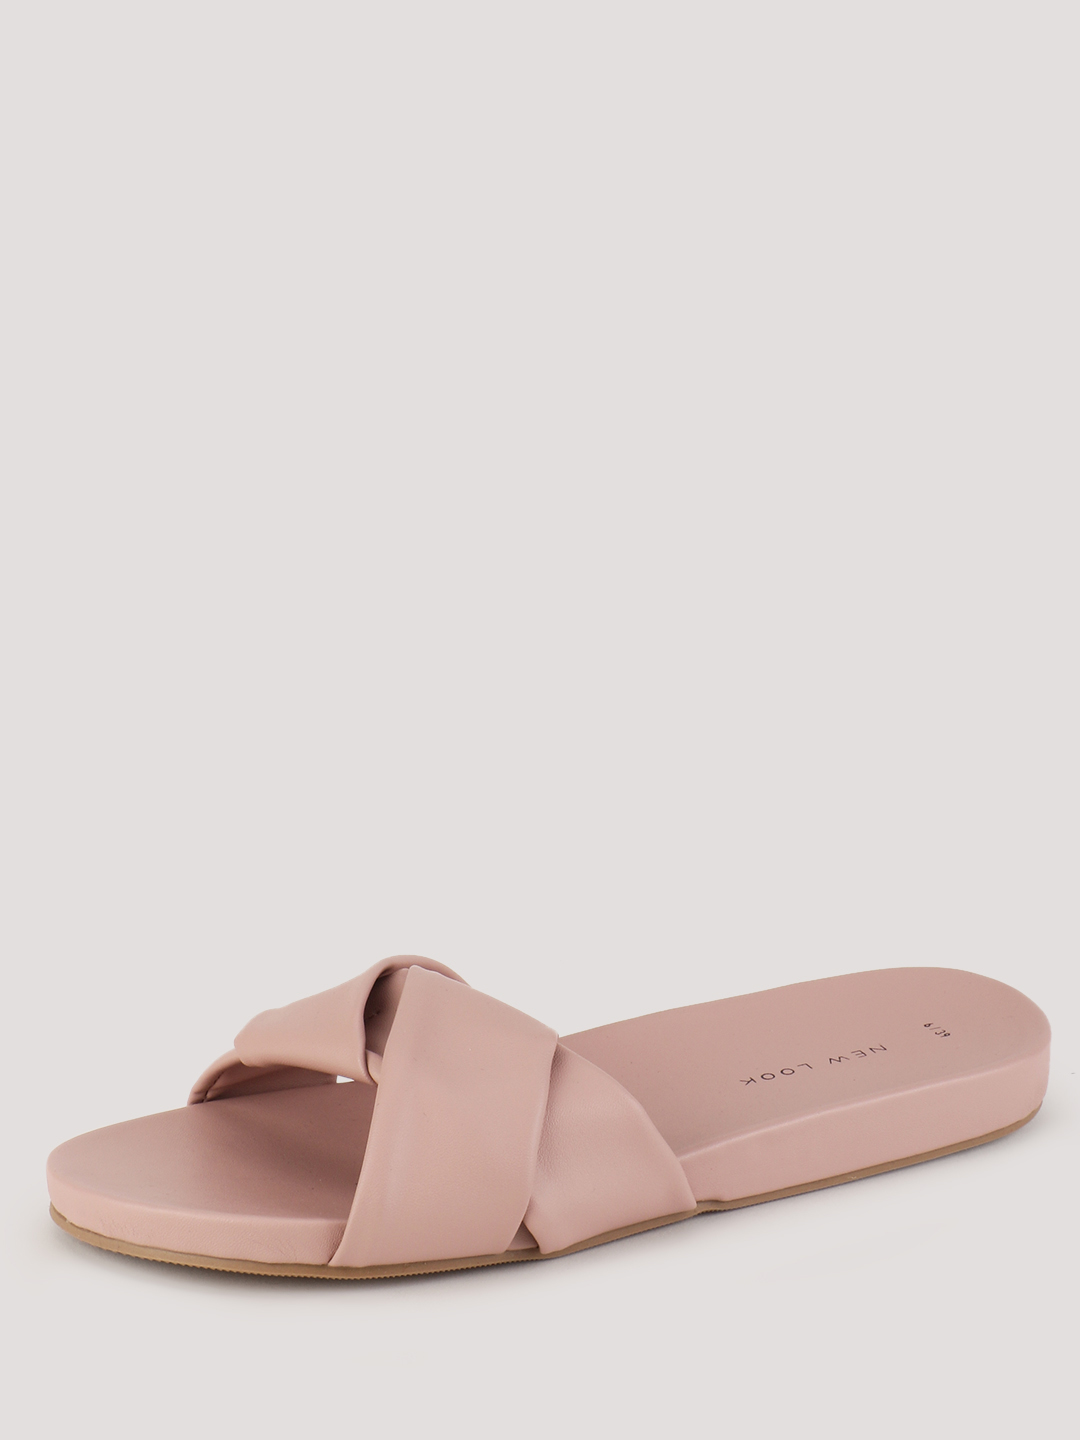 New Look Light Pink Open Toe Knot Slides 1